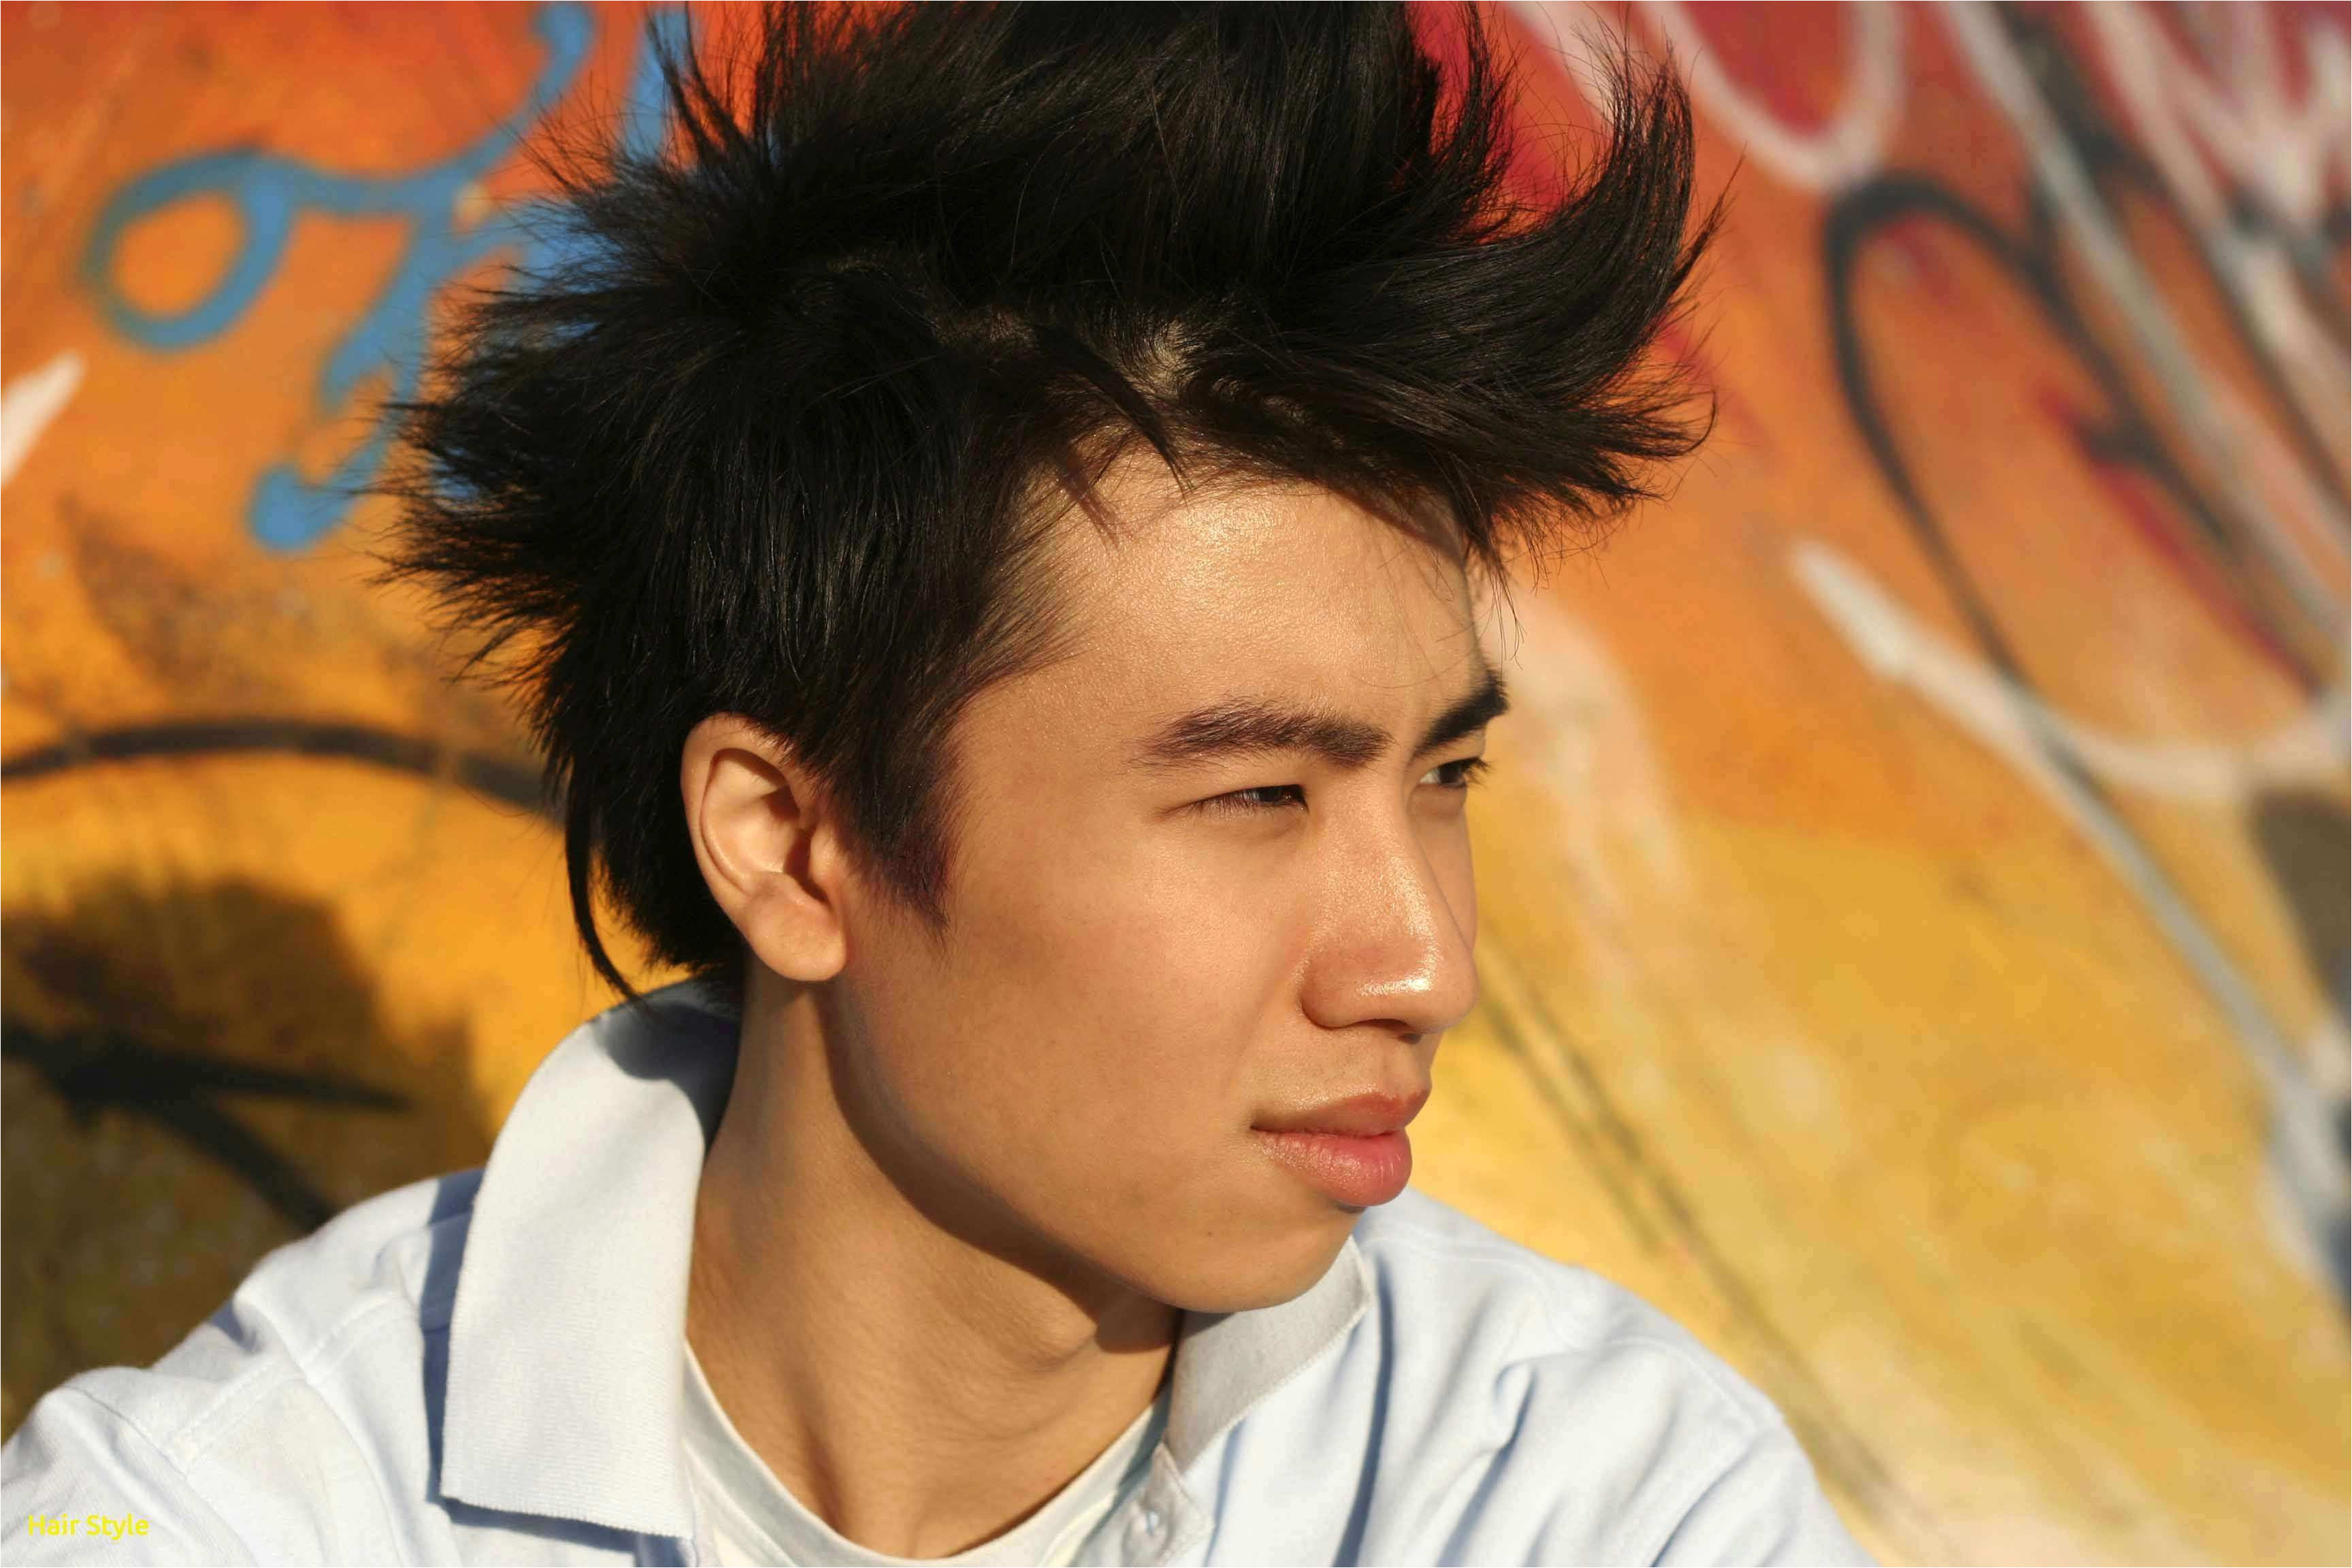 Asian Men Hair Beautiful Inspirational Best asian Hairstyles Asian Men Hair Fresh Hairstyles for asian